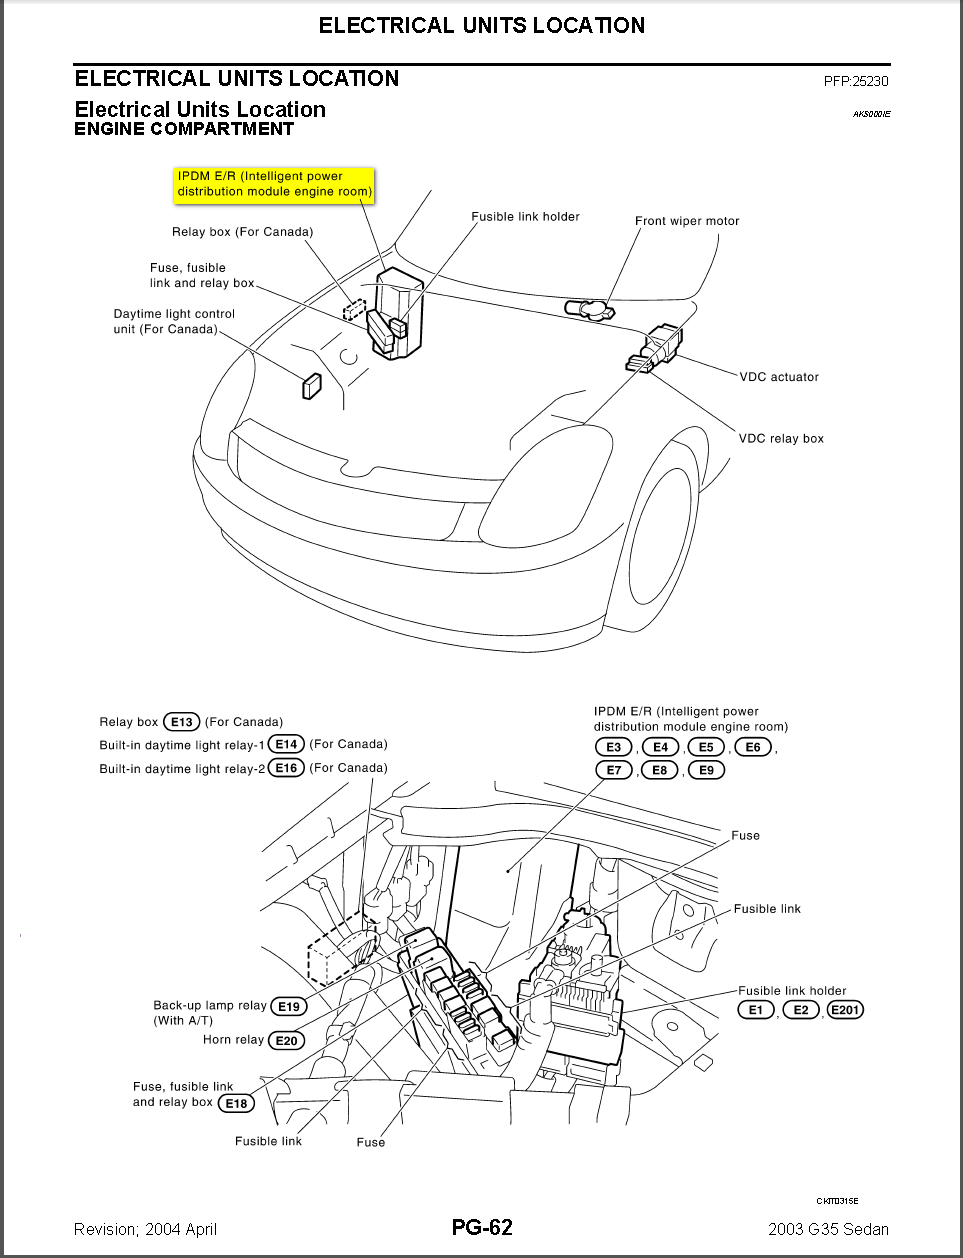 4o0l4 Disable Air Conditioning 2003 Infiniti G35 Sedan on 2003 infiniti g35 fuses diagram a c picture